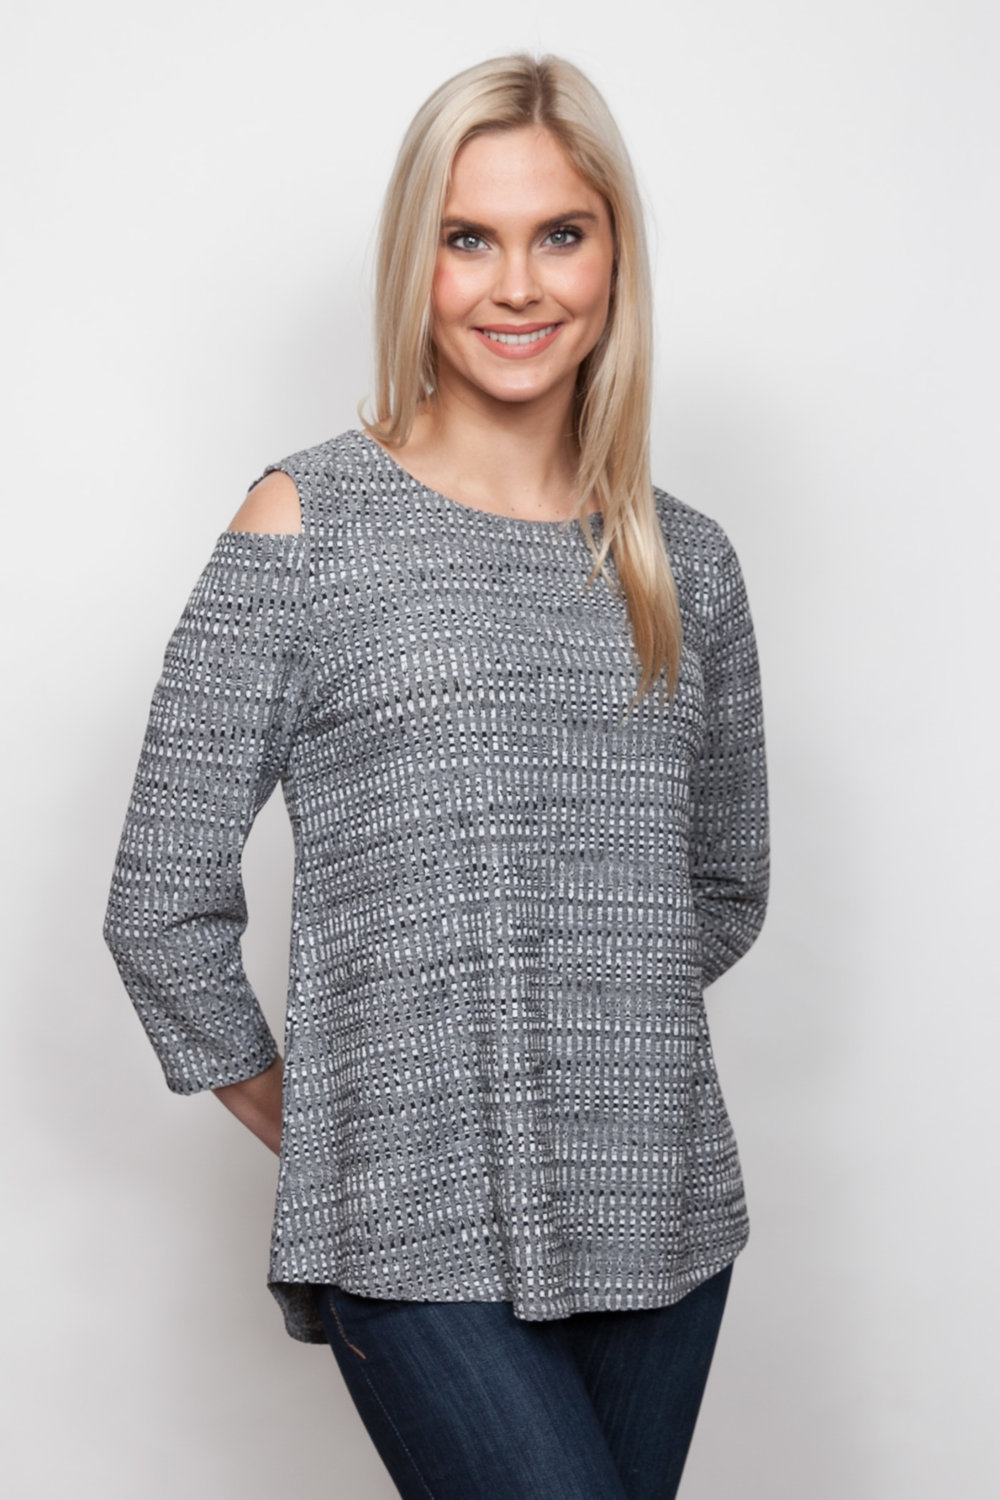 Copy of Style # 92439-18, p 5 </br>Tweedy Mini Check Jacq'd </br>Color: Charcoal